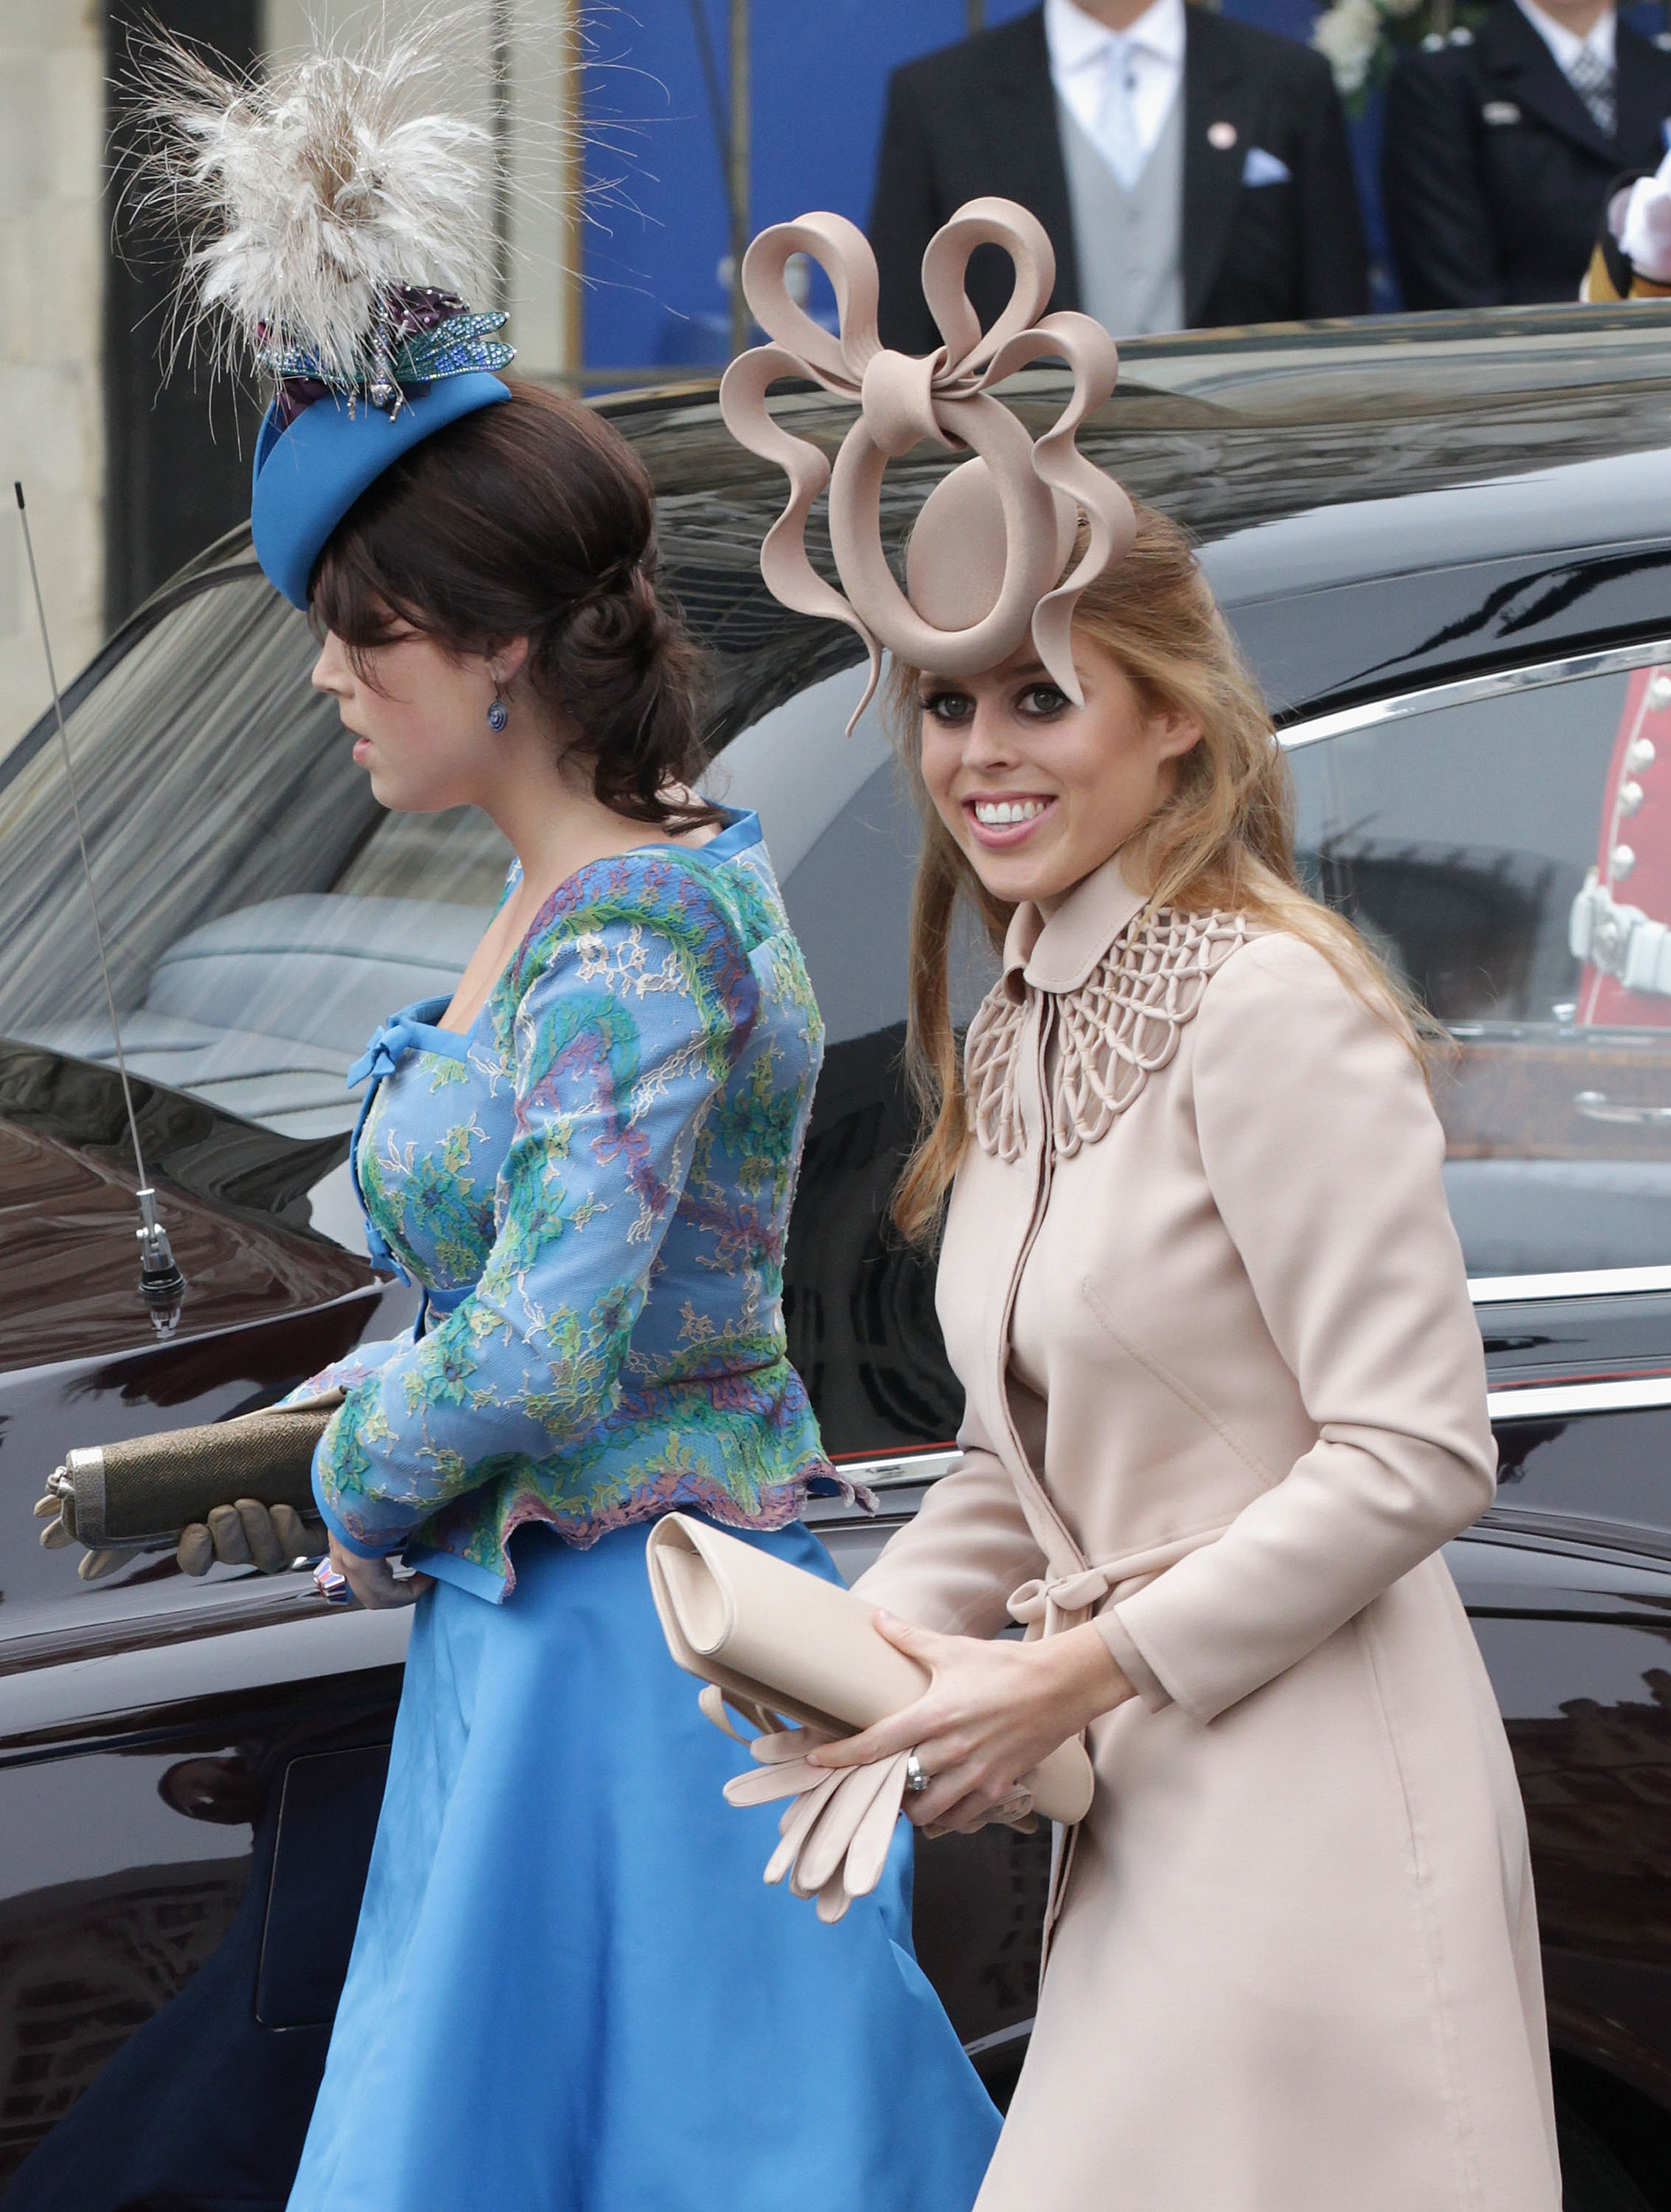 Did Fergie Persuade Her Daughters To Wear Those Hats